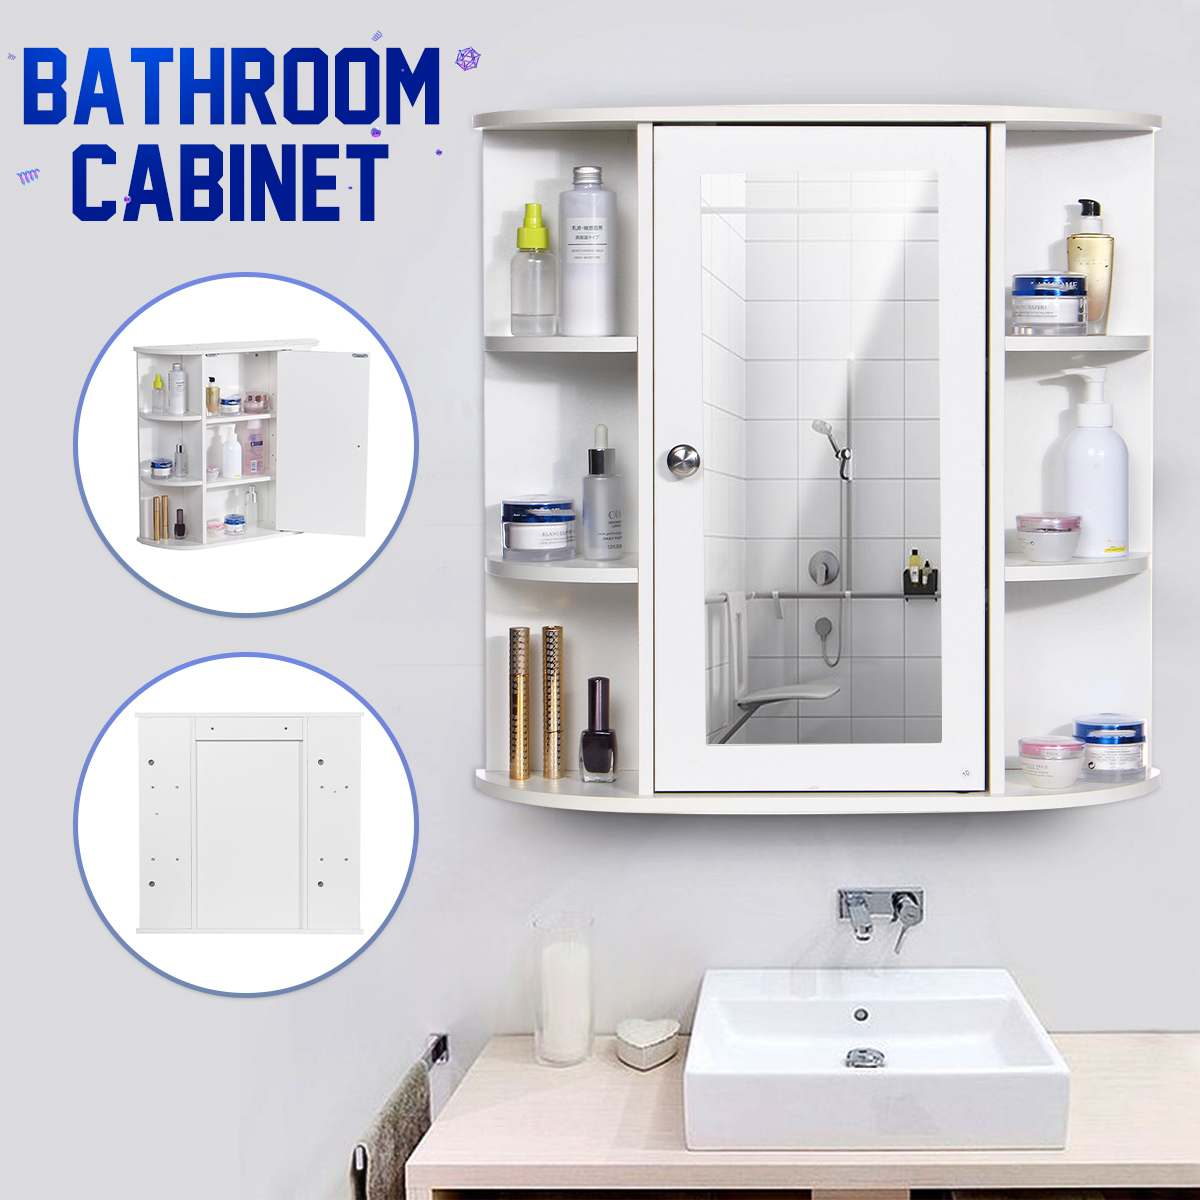 Bathroom Cabinet With Mirror 58 X 60 X 16.5cm Wall Mounted Bathroom Toilet Furniture Cabinet Cupboard Shelf Cosmetic Storager